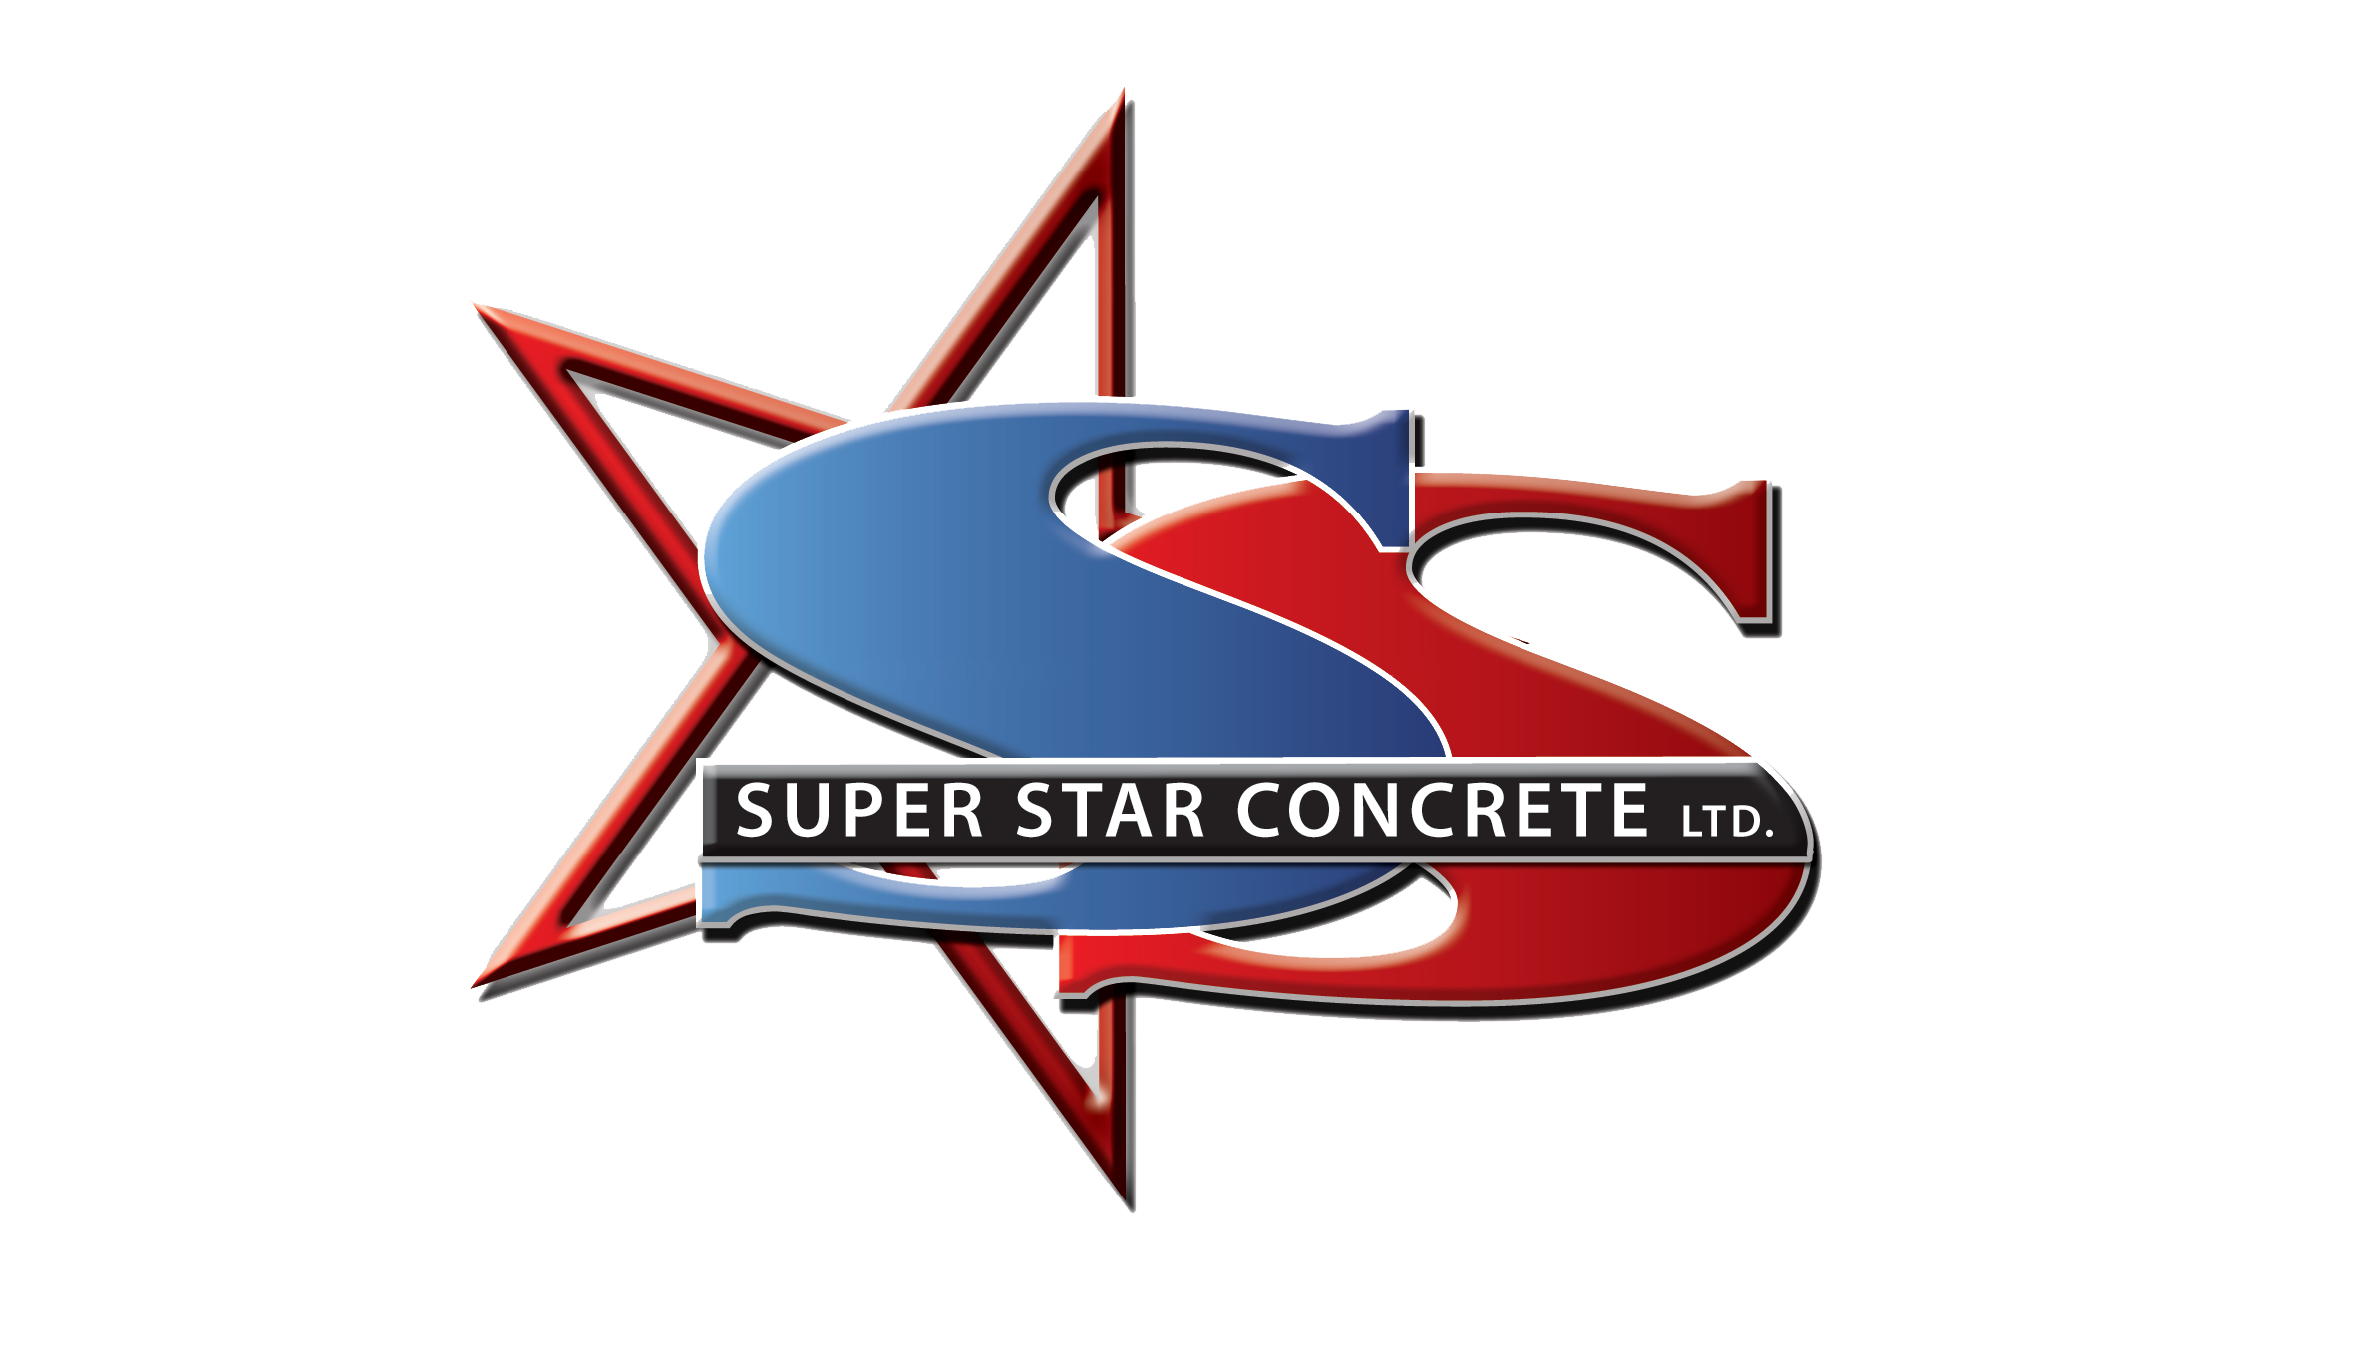 Super Star Concrete Ltd